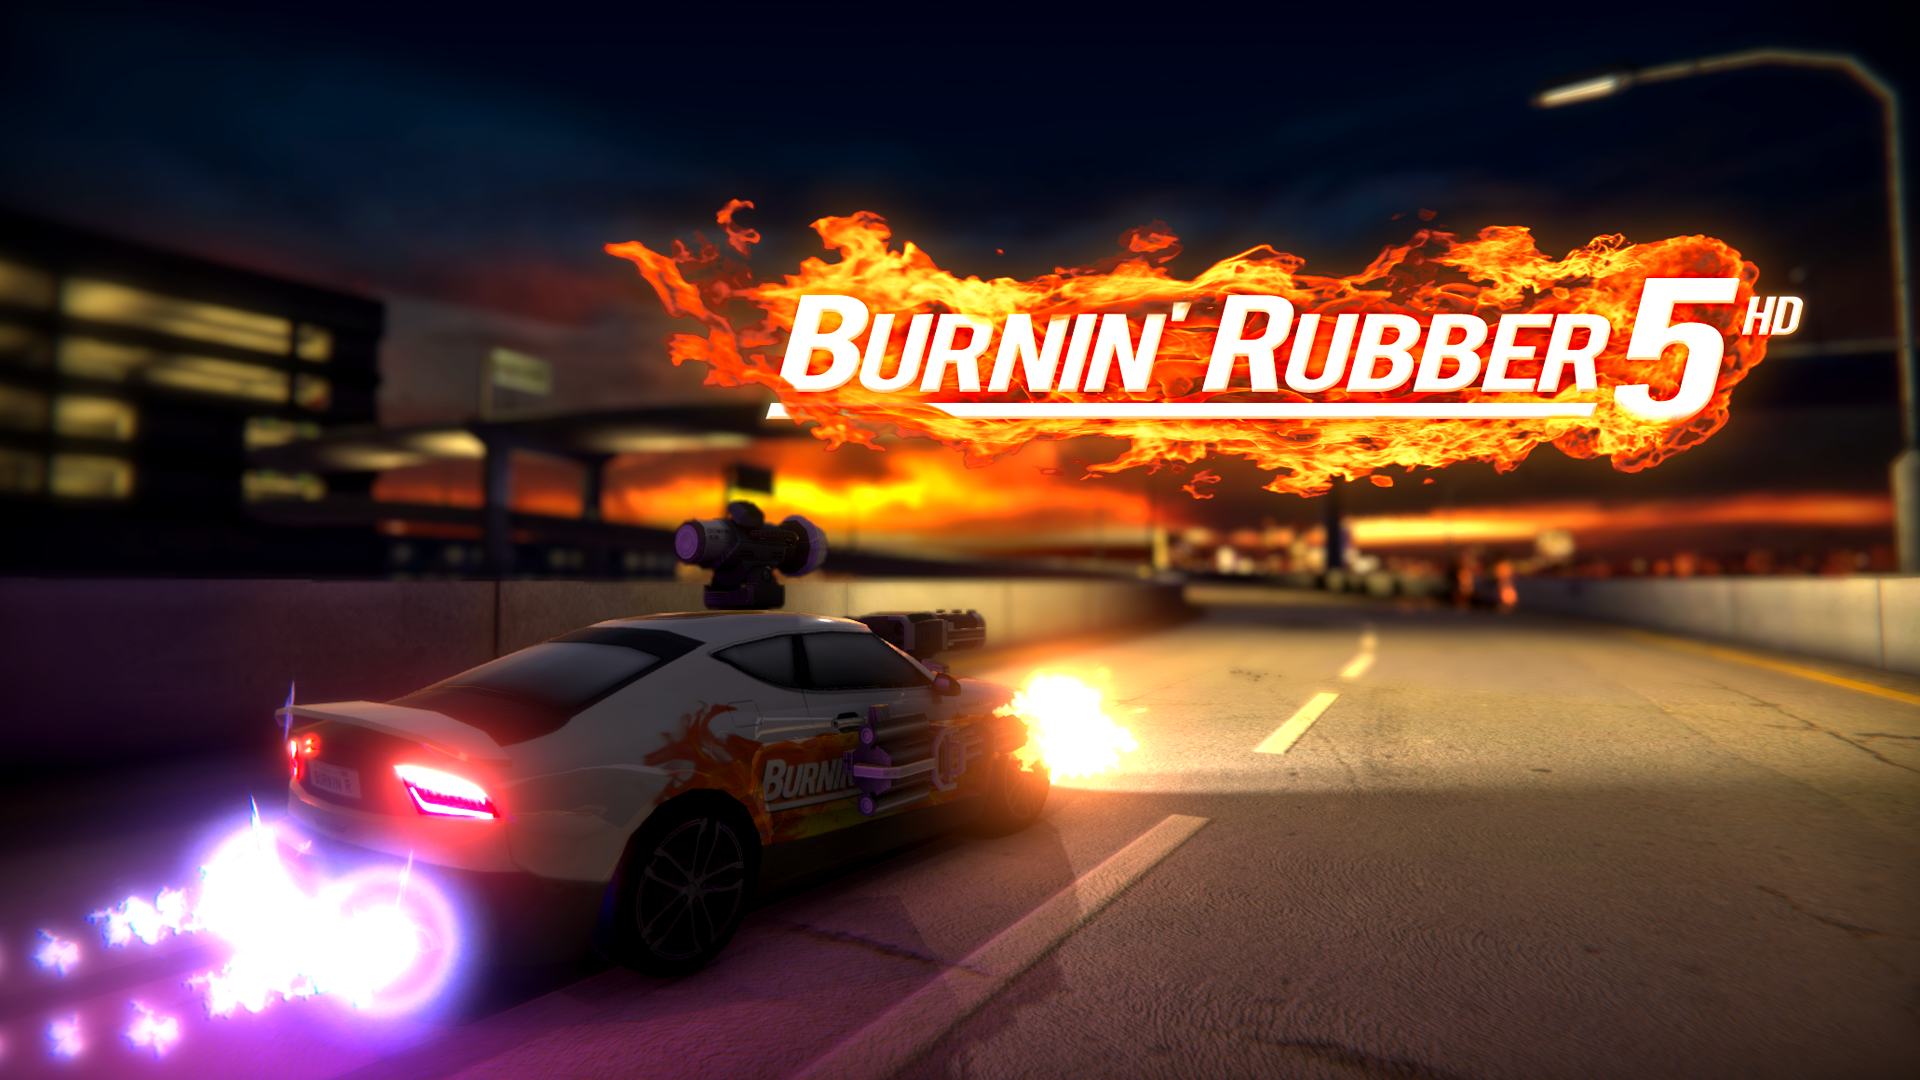 Burnin' Rubber 5 HD :: Group Announcements